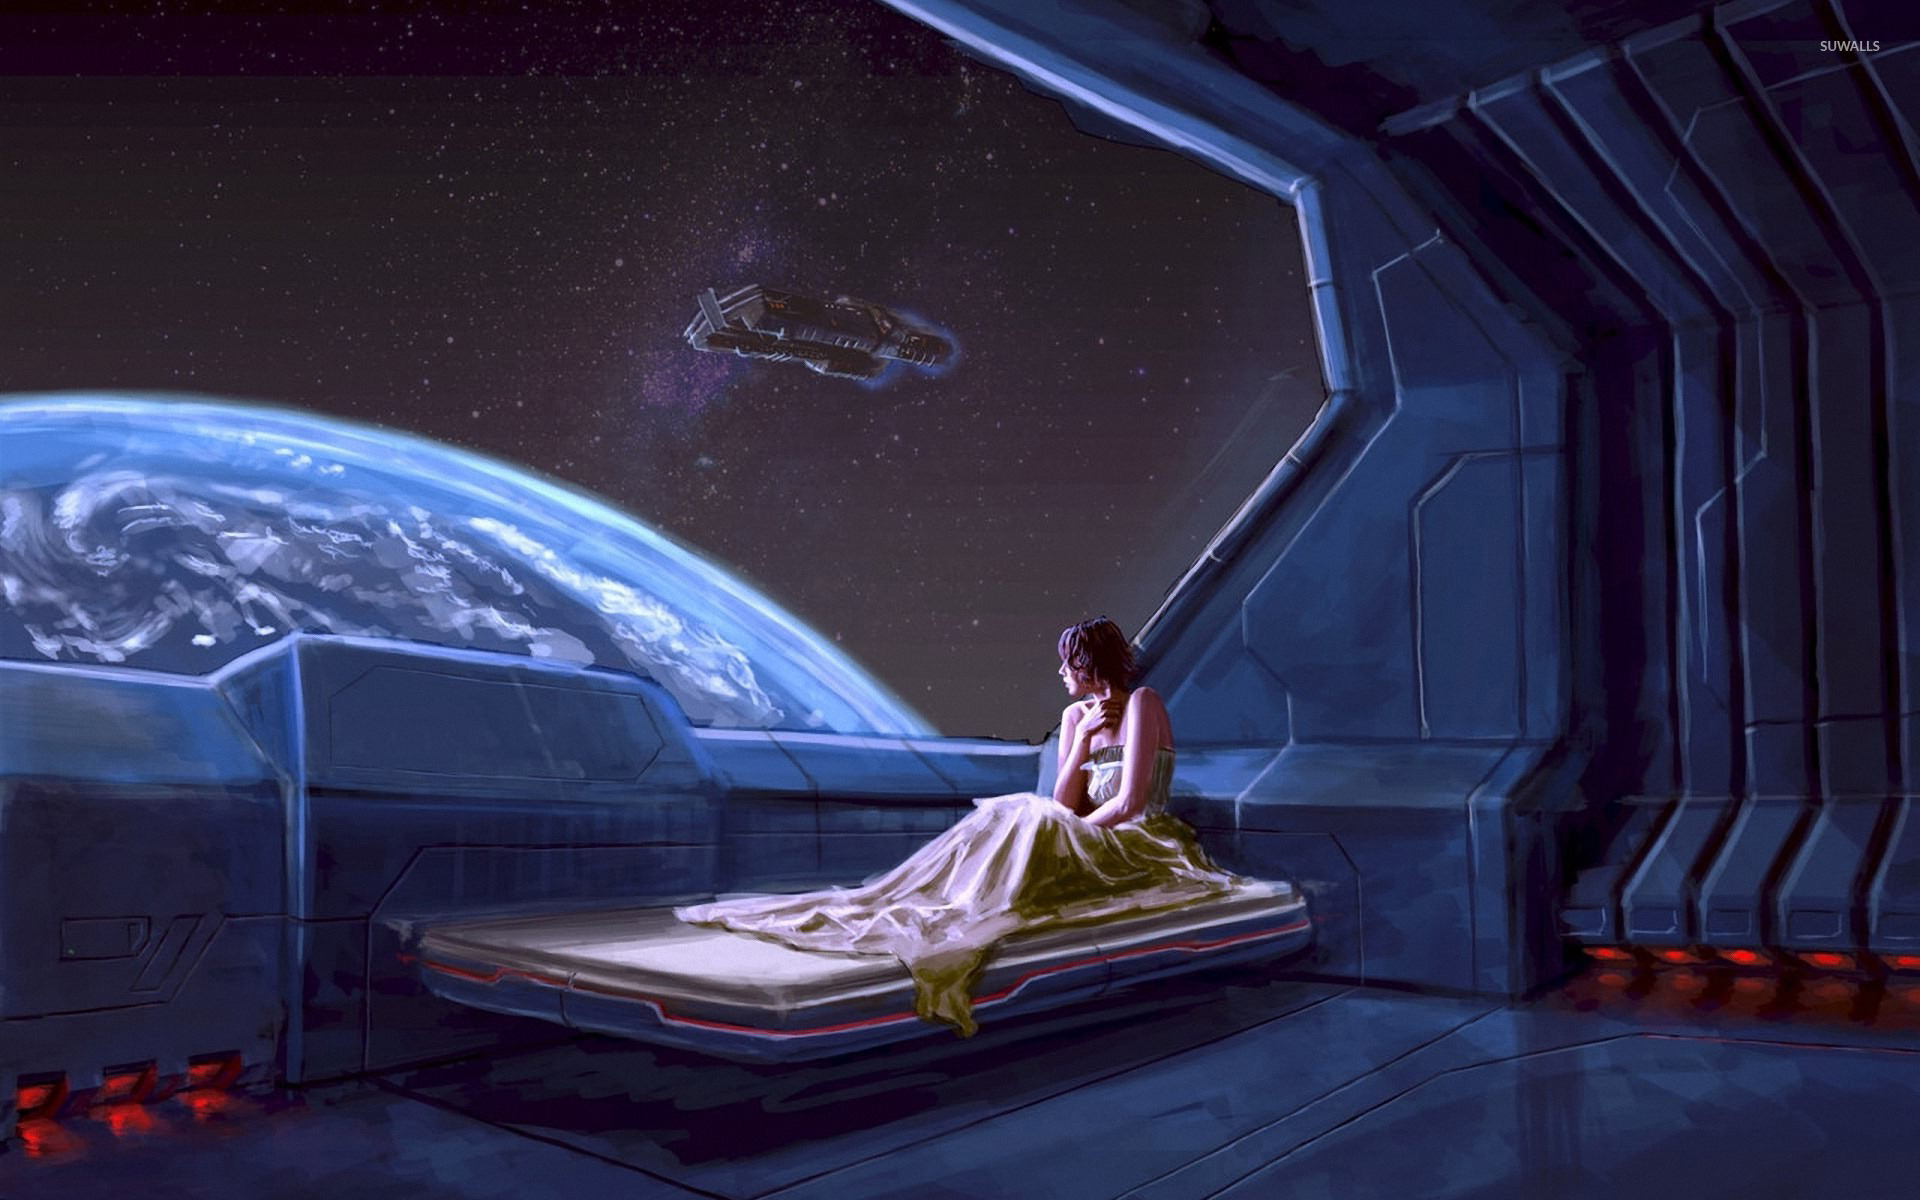 Girl In A Spaceship Wallpaper Fantasy Wallpapers 12477